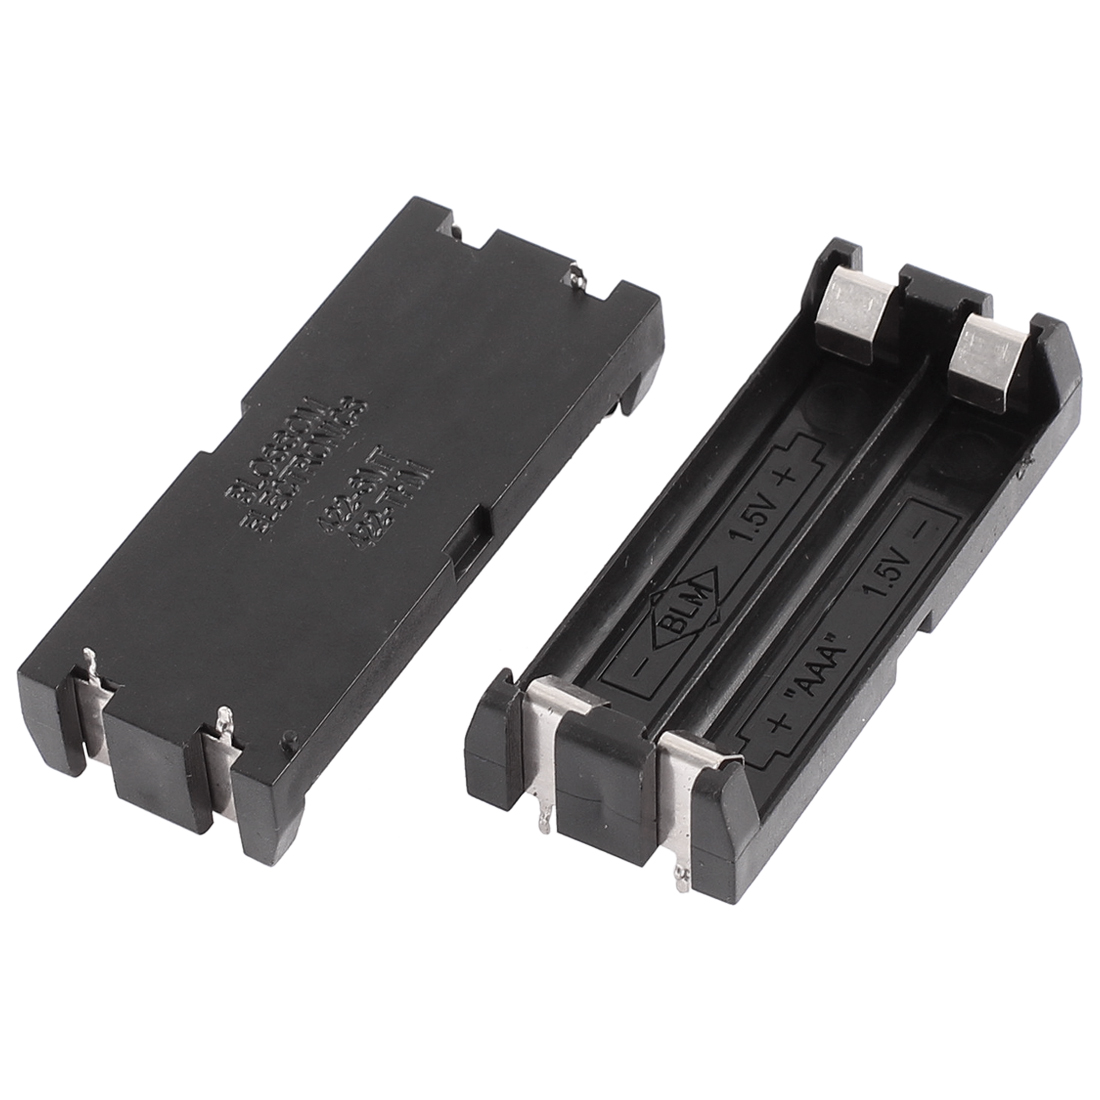 Plastic Shell 2 x 1.5V AAA Battery Box Case Holder 4 Pins Contact 2Pcs